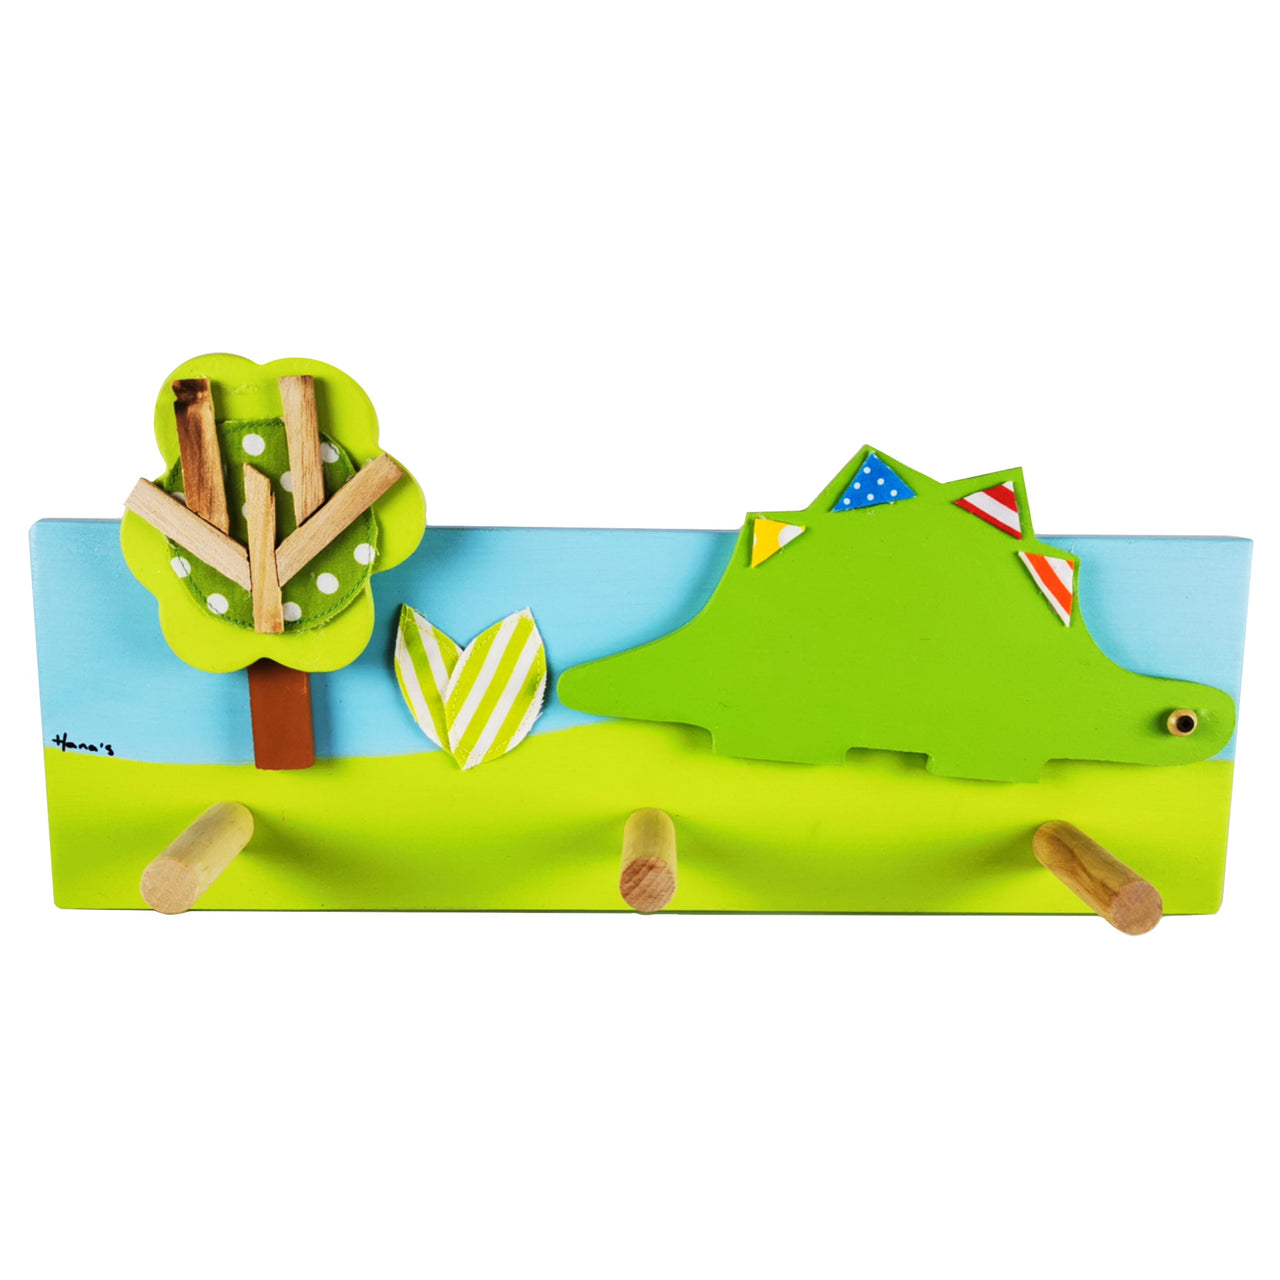 This hand-crafted coat rack has a light blue and green wooden base with a green dinosaur and tree design layered on top. Creatively constructed from wood and layered fabric, the vibrant dinosaur design is stunning. It has three wooden pegs for keeping your children's clothes organised.